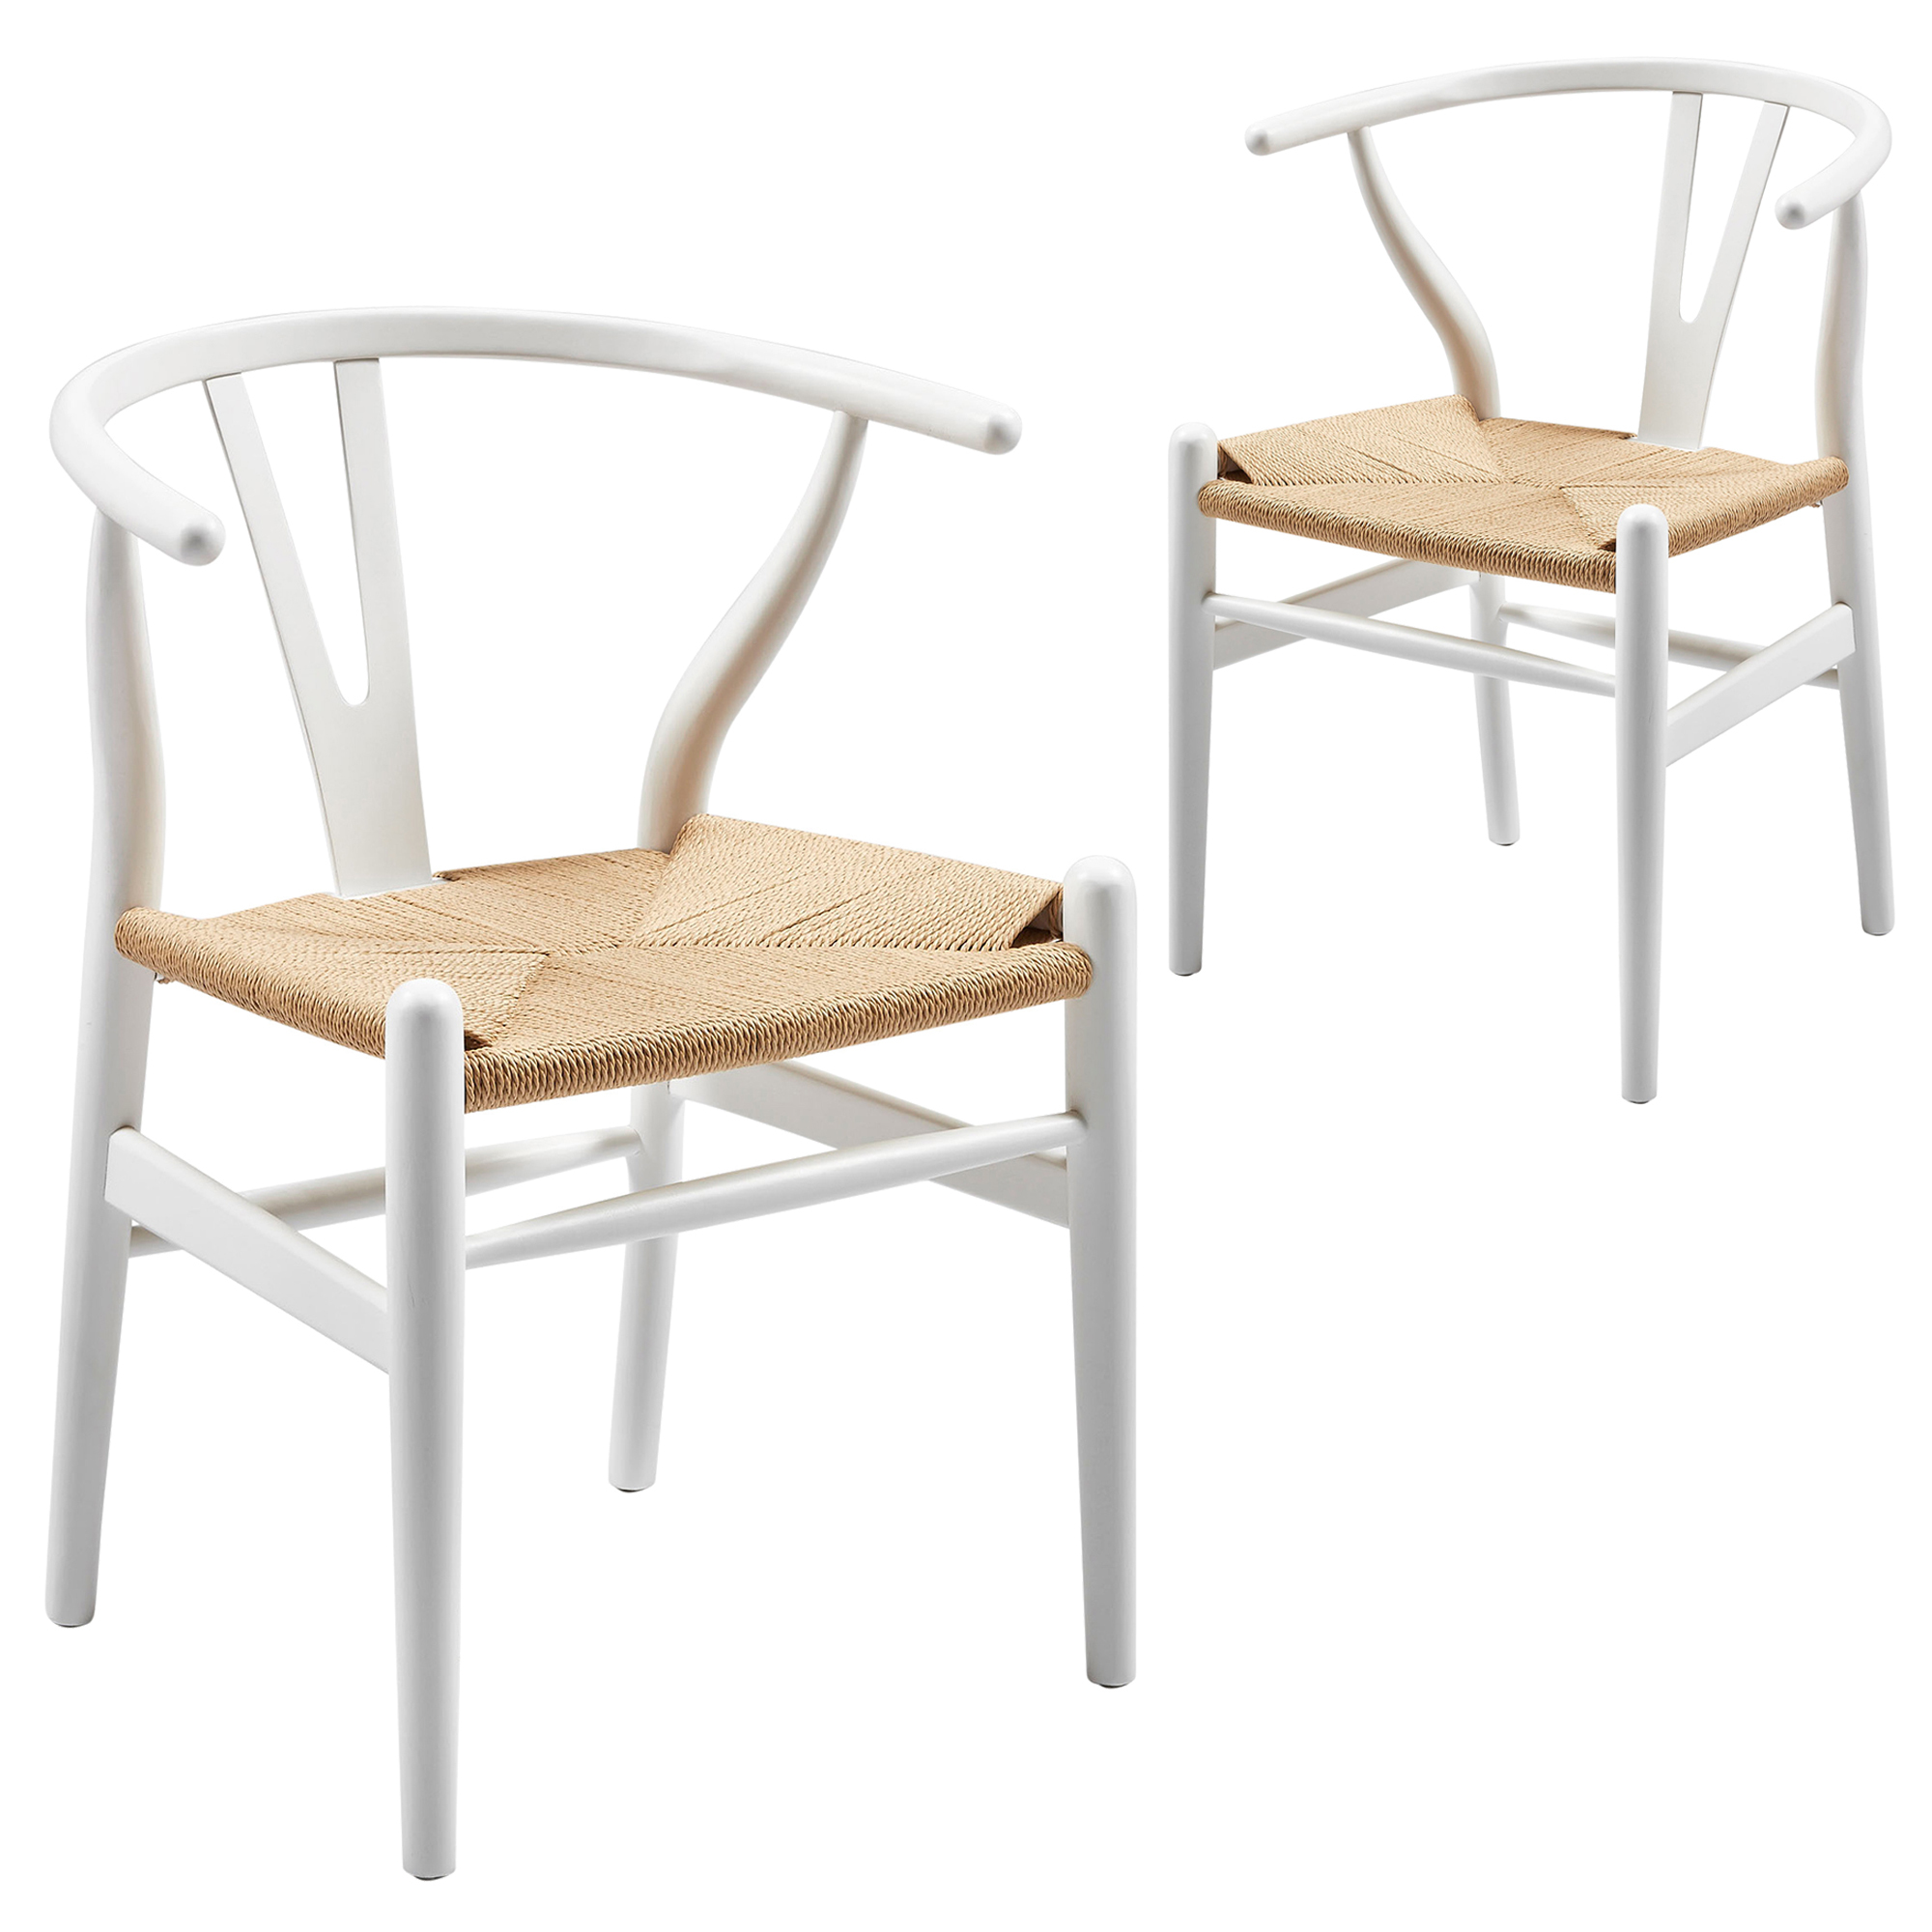 SKU #TPWT2501 White U0026 Natural Replica Hans Wegner Wishbone Chairs Is Also  Sometimes Listed Under The Following Manufacturer Numbers: ADWISWTN